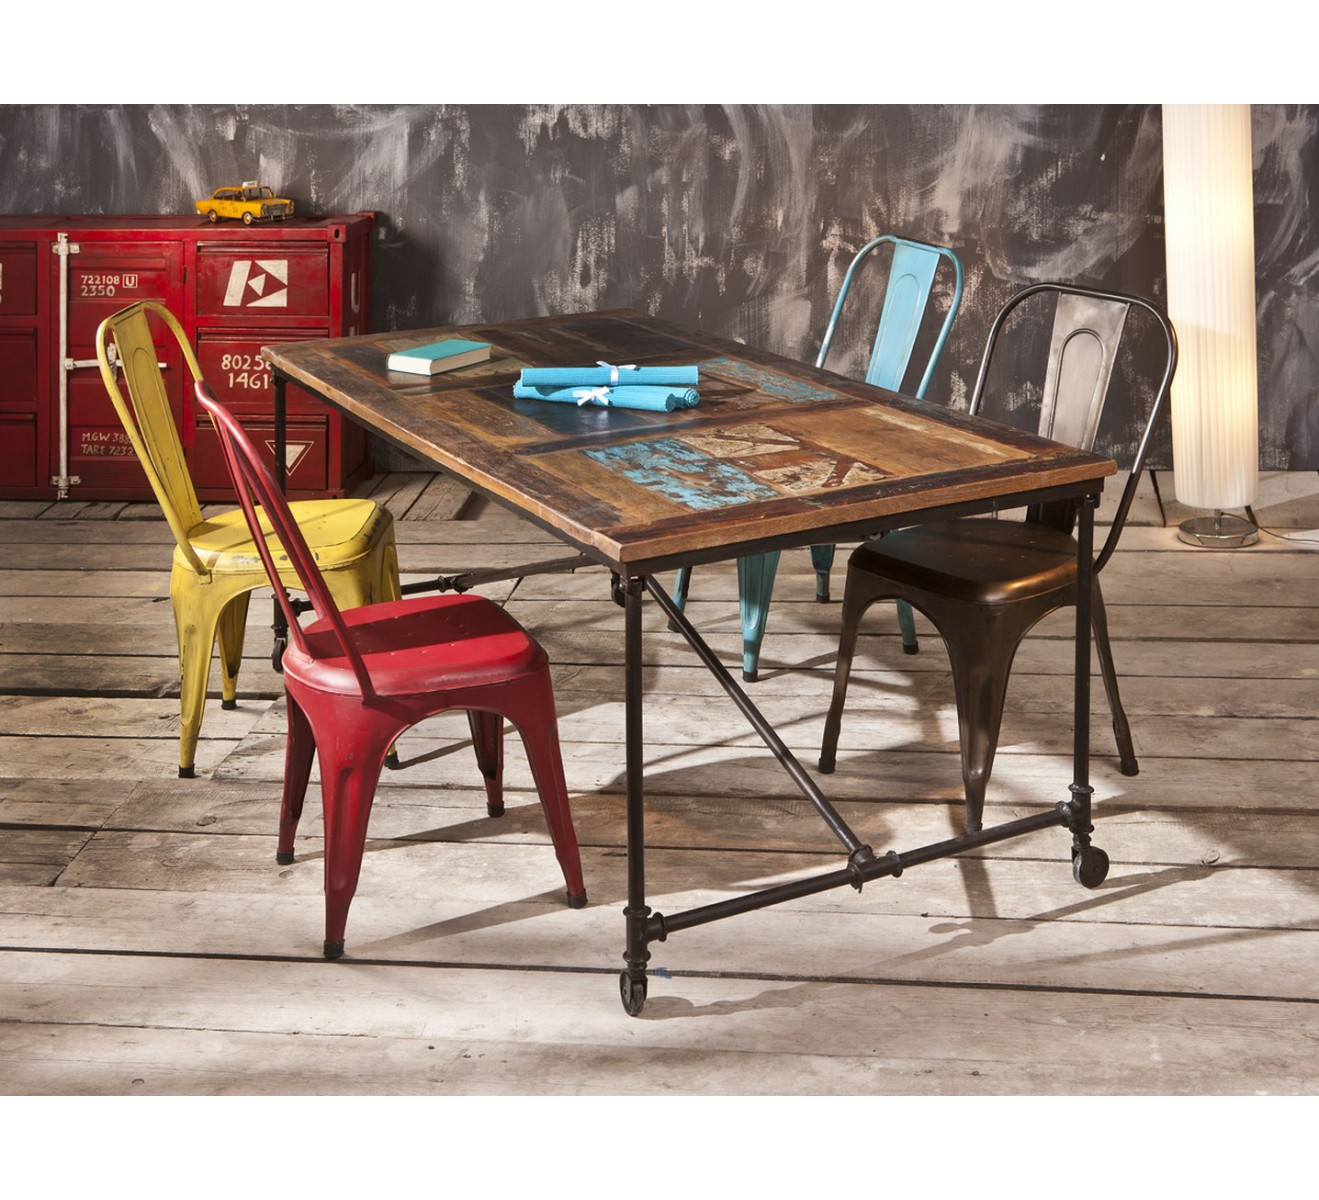 Table industrielle m tal et bois recycl docker 6892 for Table haute bois et metal